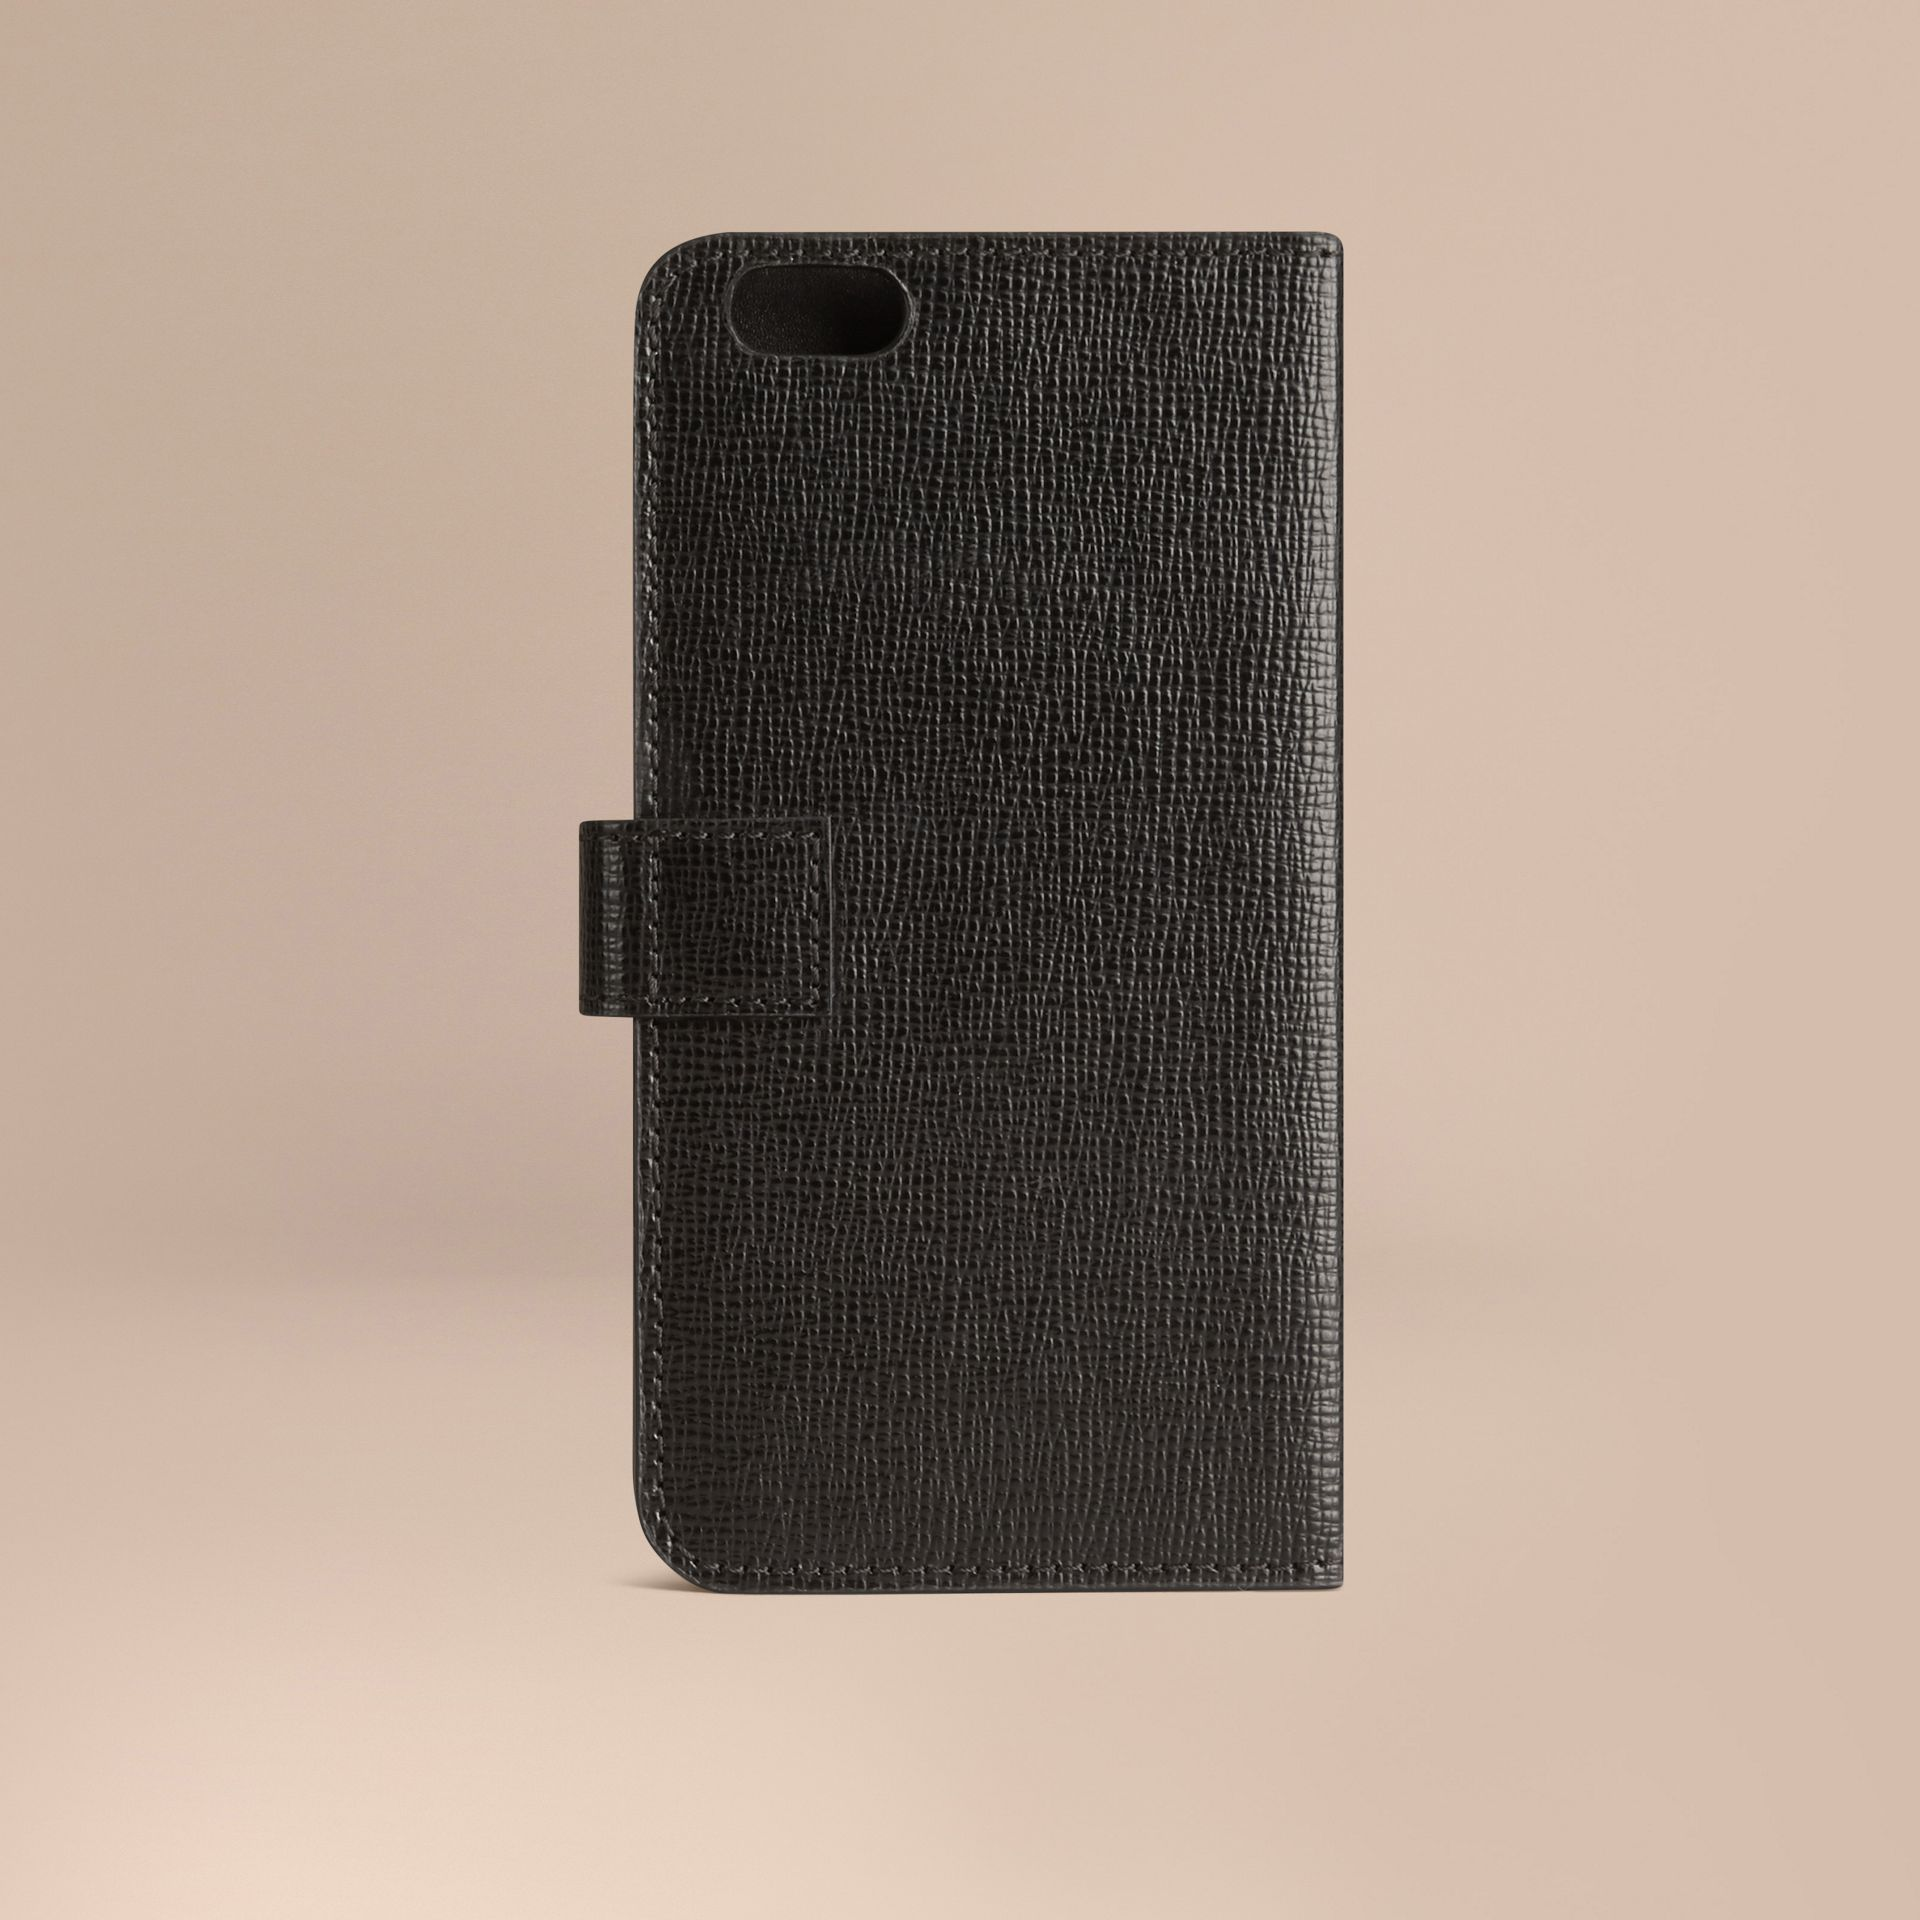 Nero Custodia a libro in pelle London per iPhone 6 Nero - immagine della galleria 3